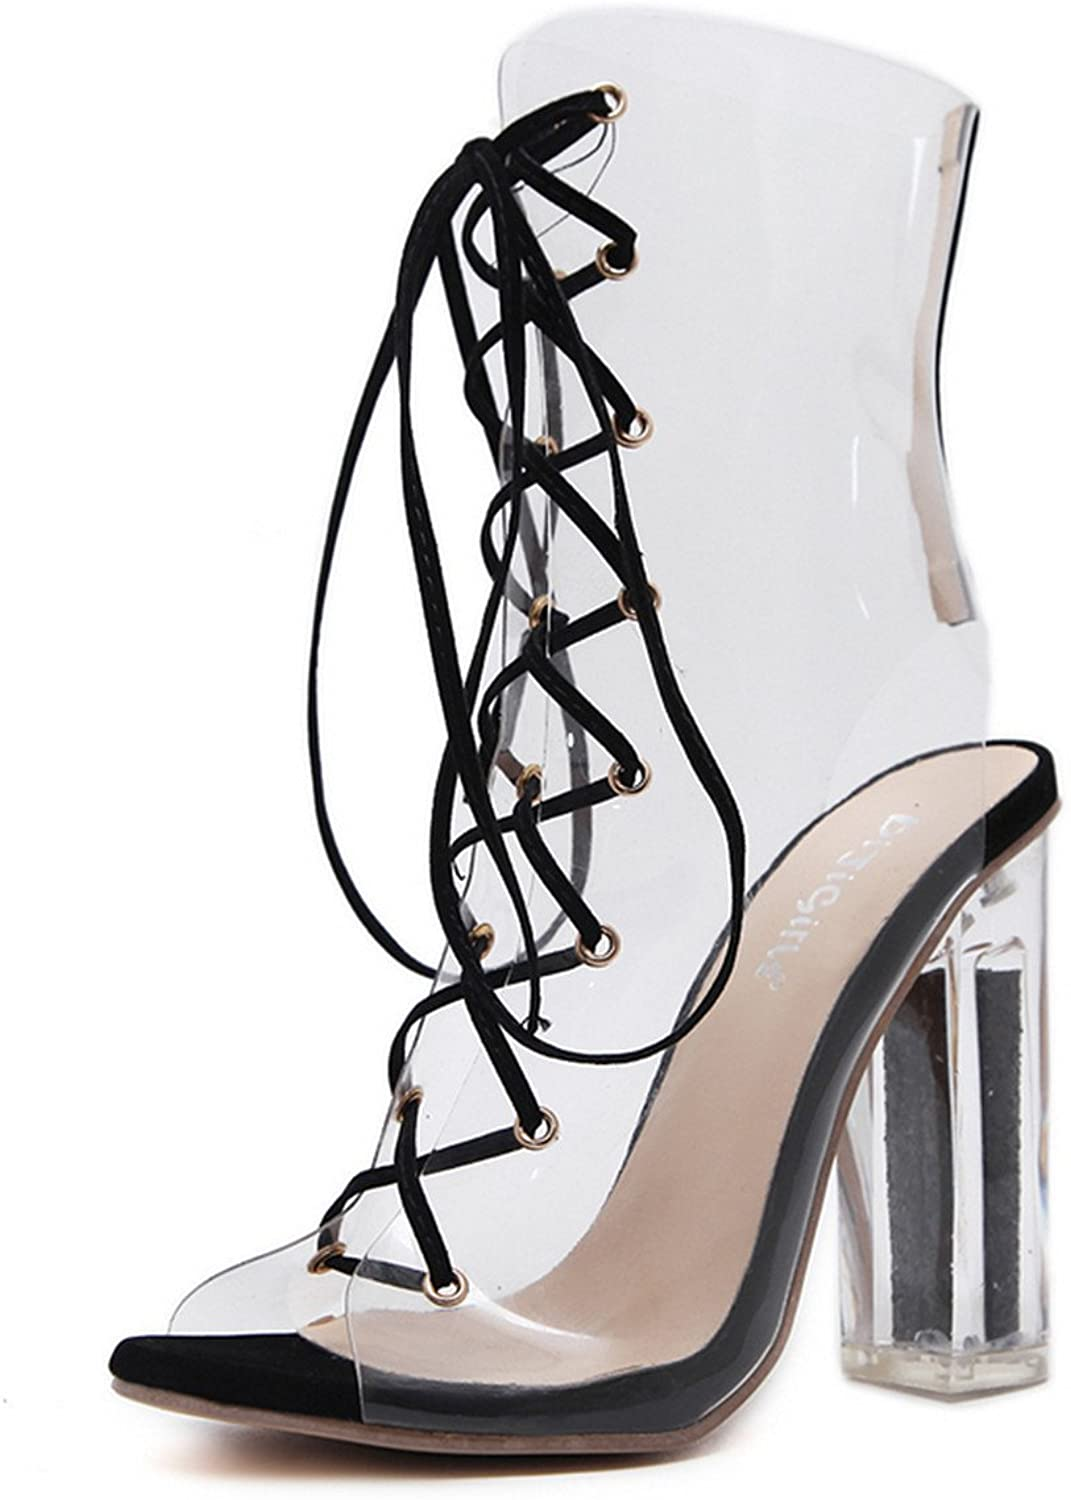 Quality.A Hi-top Cool shoes Fashion Transparent Strappy Heels Fashion Thick Heel Sandals